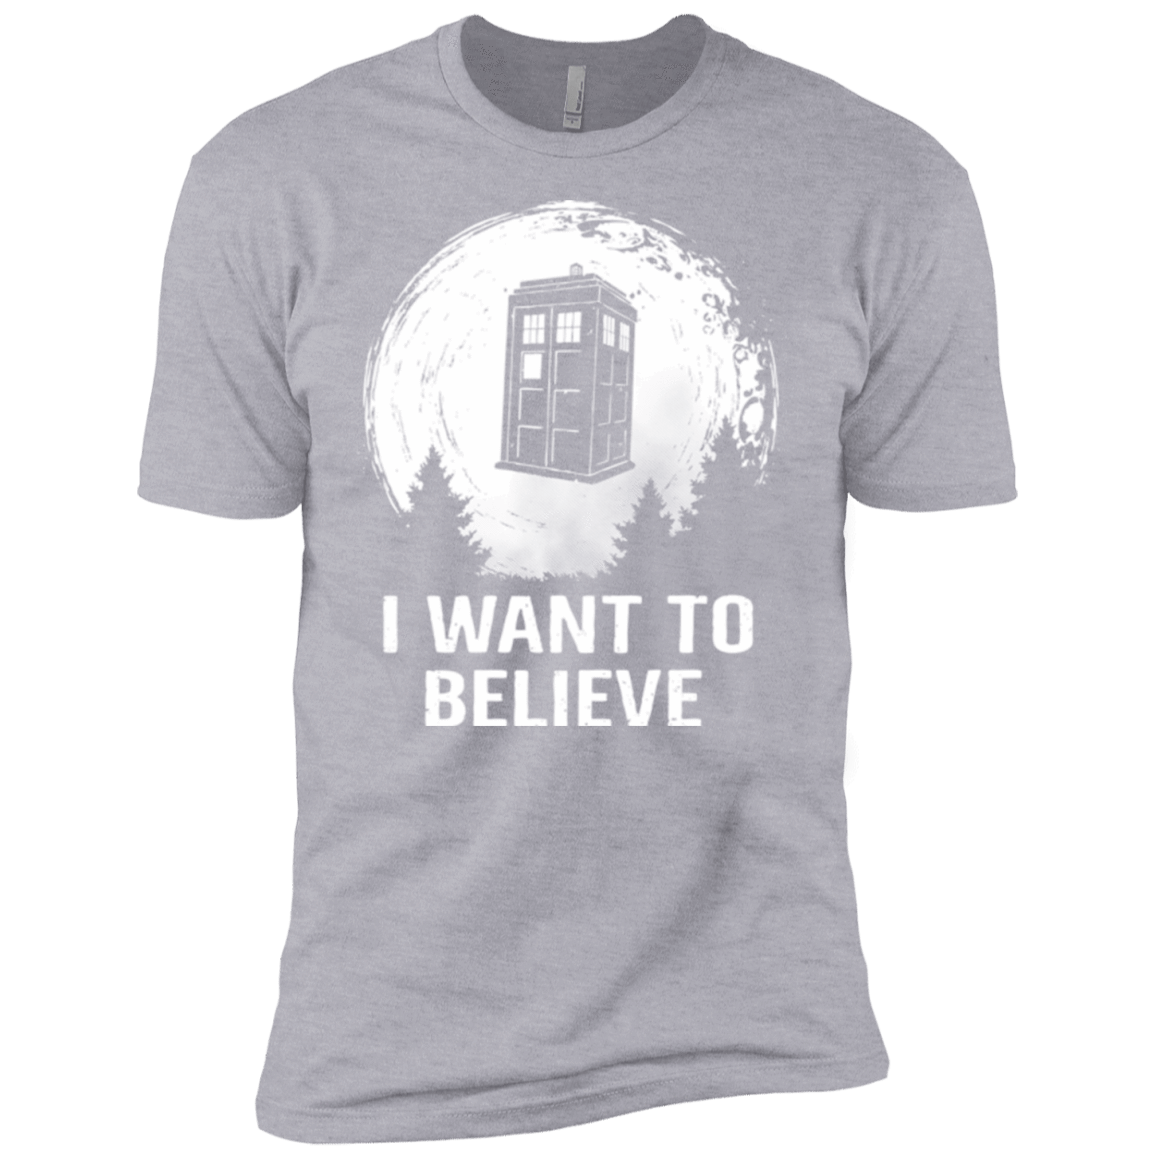 Believe2 Boys Premium T-Shirt